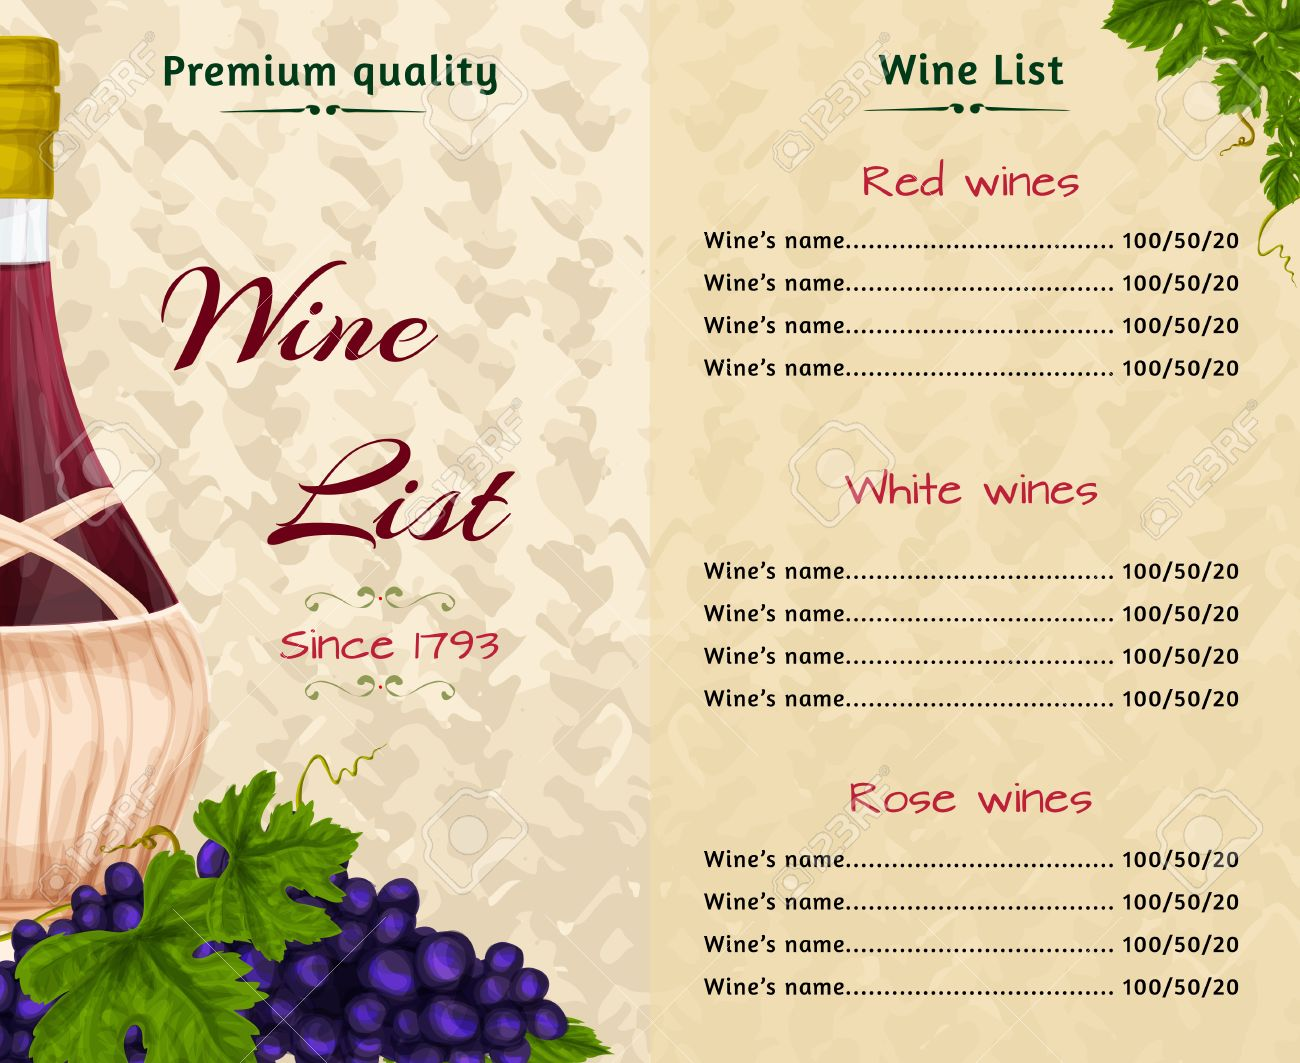 Vintage Restaurant Premium Quality Wine List Card Menu Template Vector  Illustration Stock Vector   28493259  Free Wine List Template